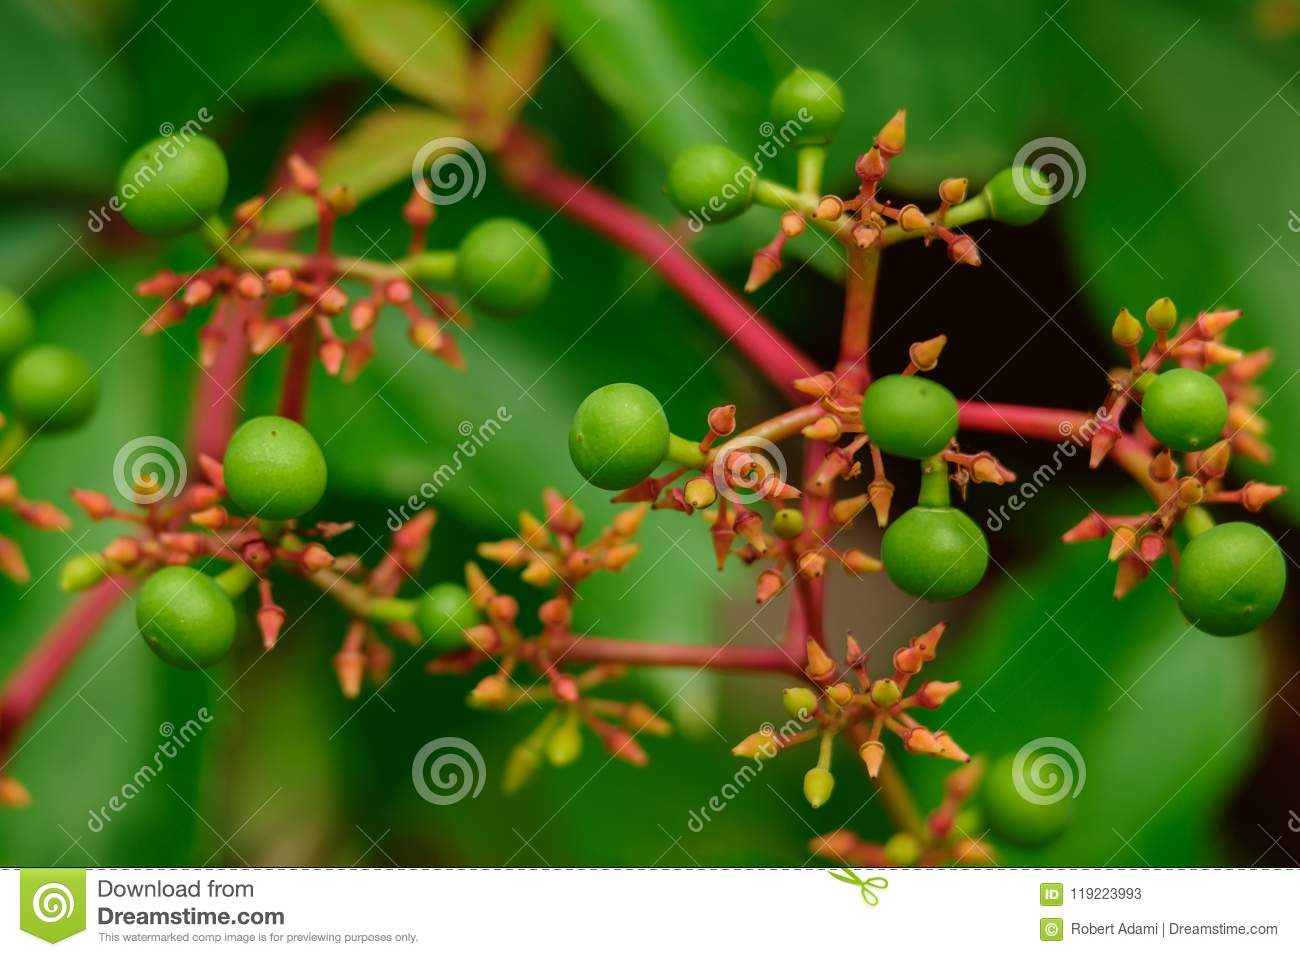 Green berries of wild vines